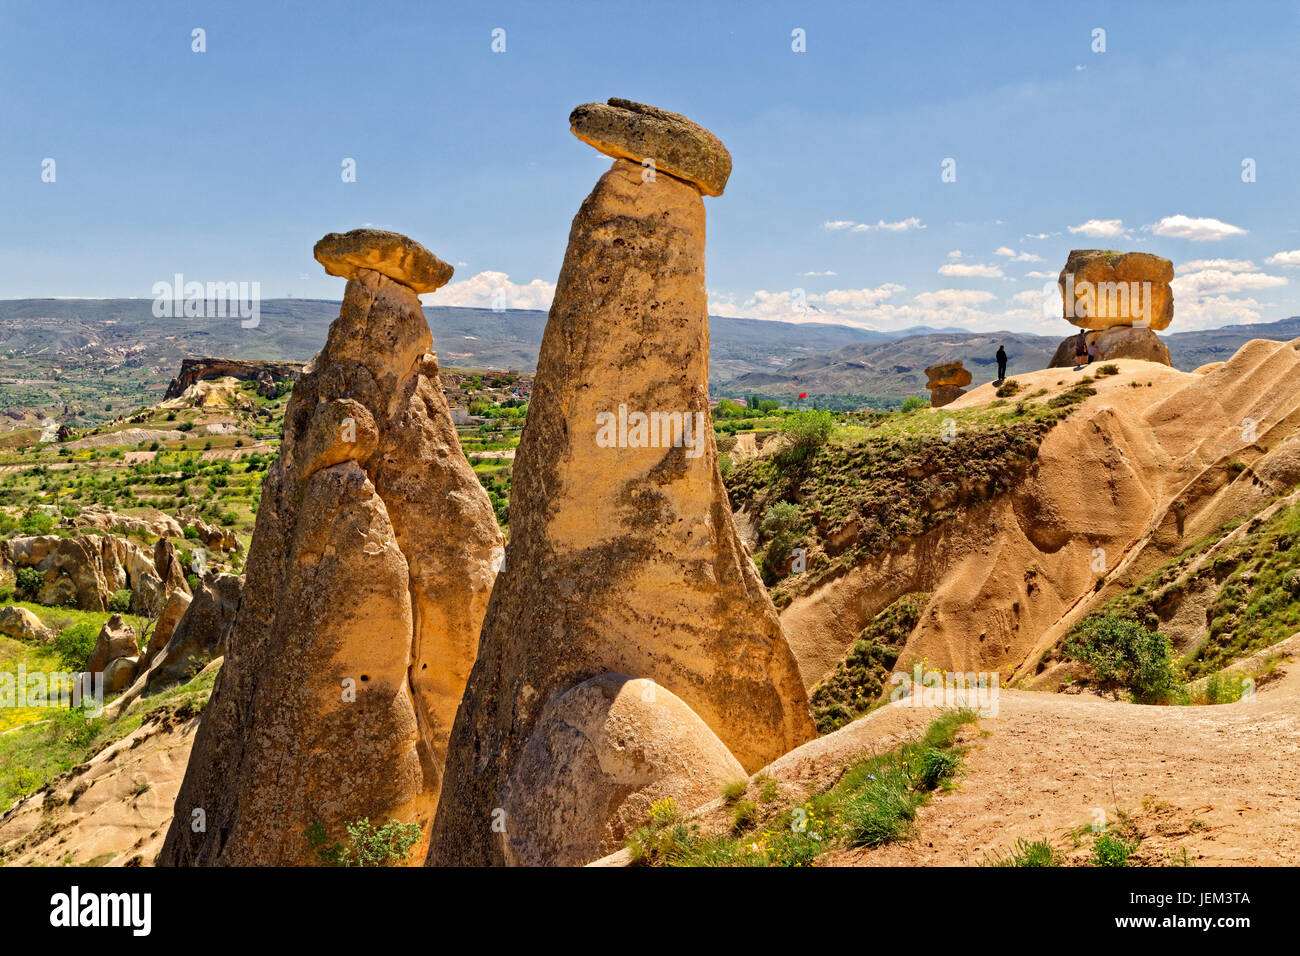 Fairy Chimneys between Urgup and Goreme, Cappadocia, Turkey. - Stock Image